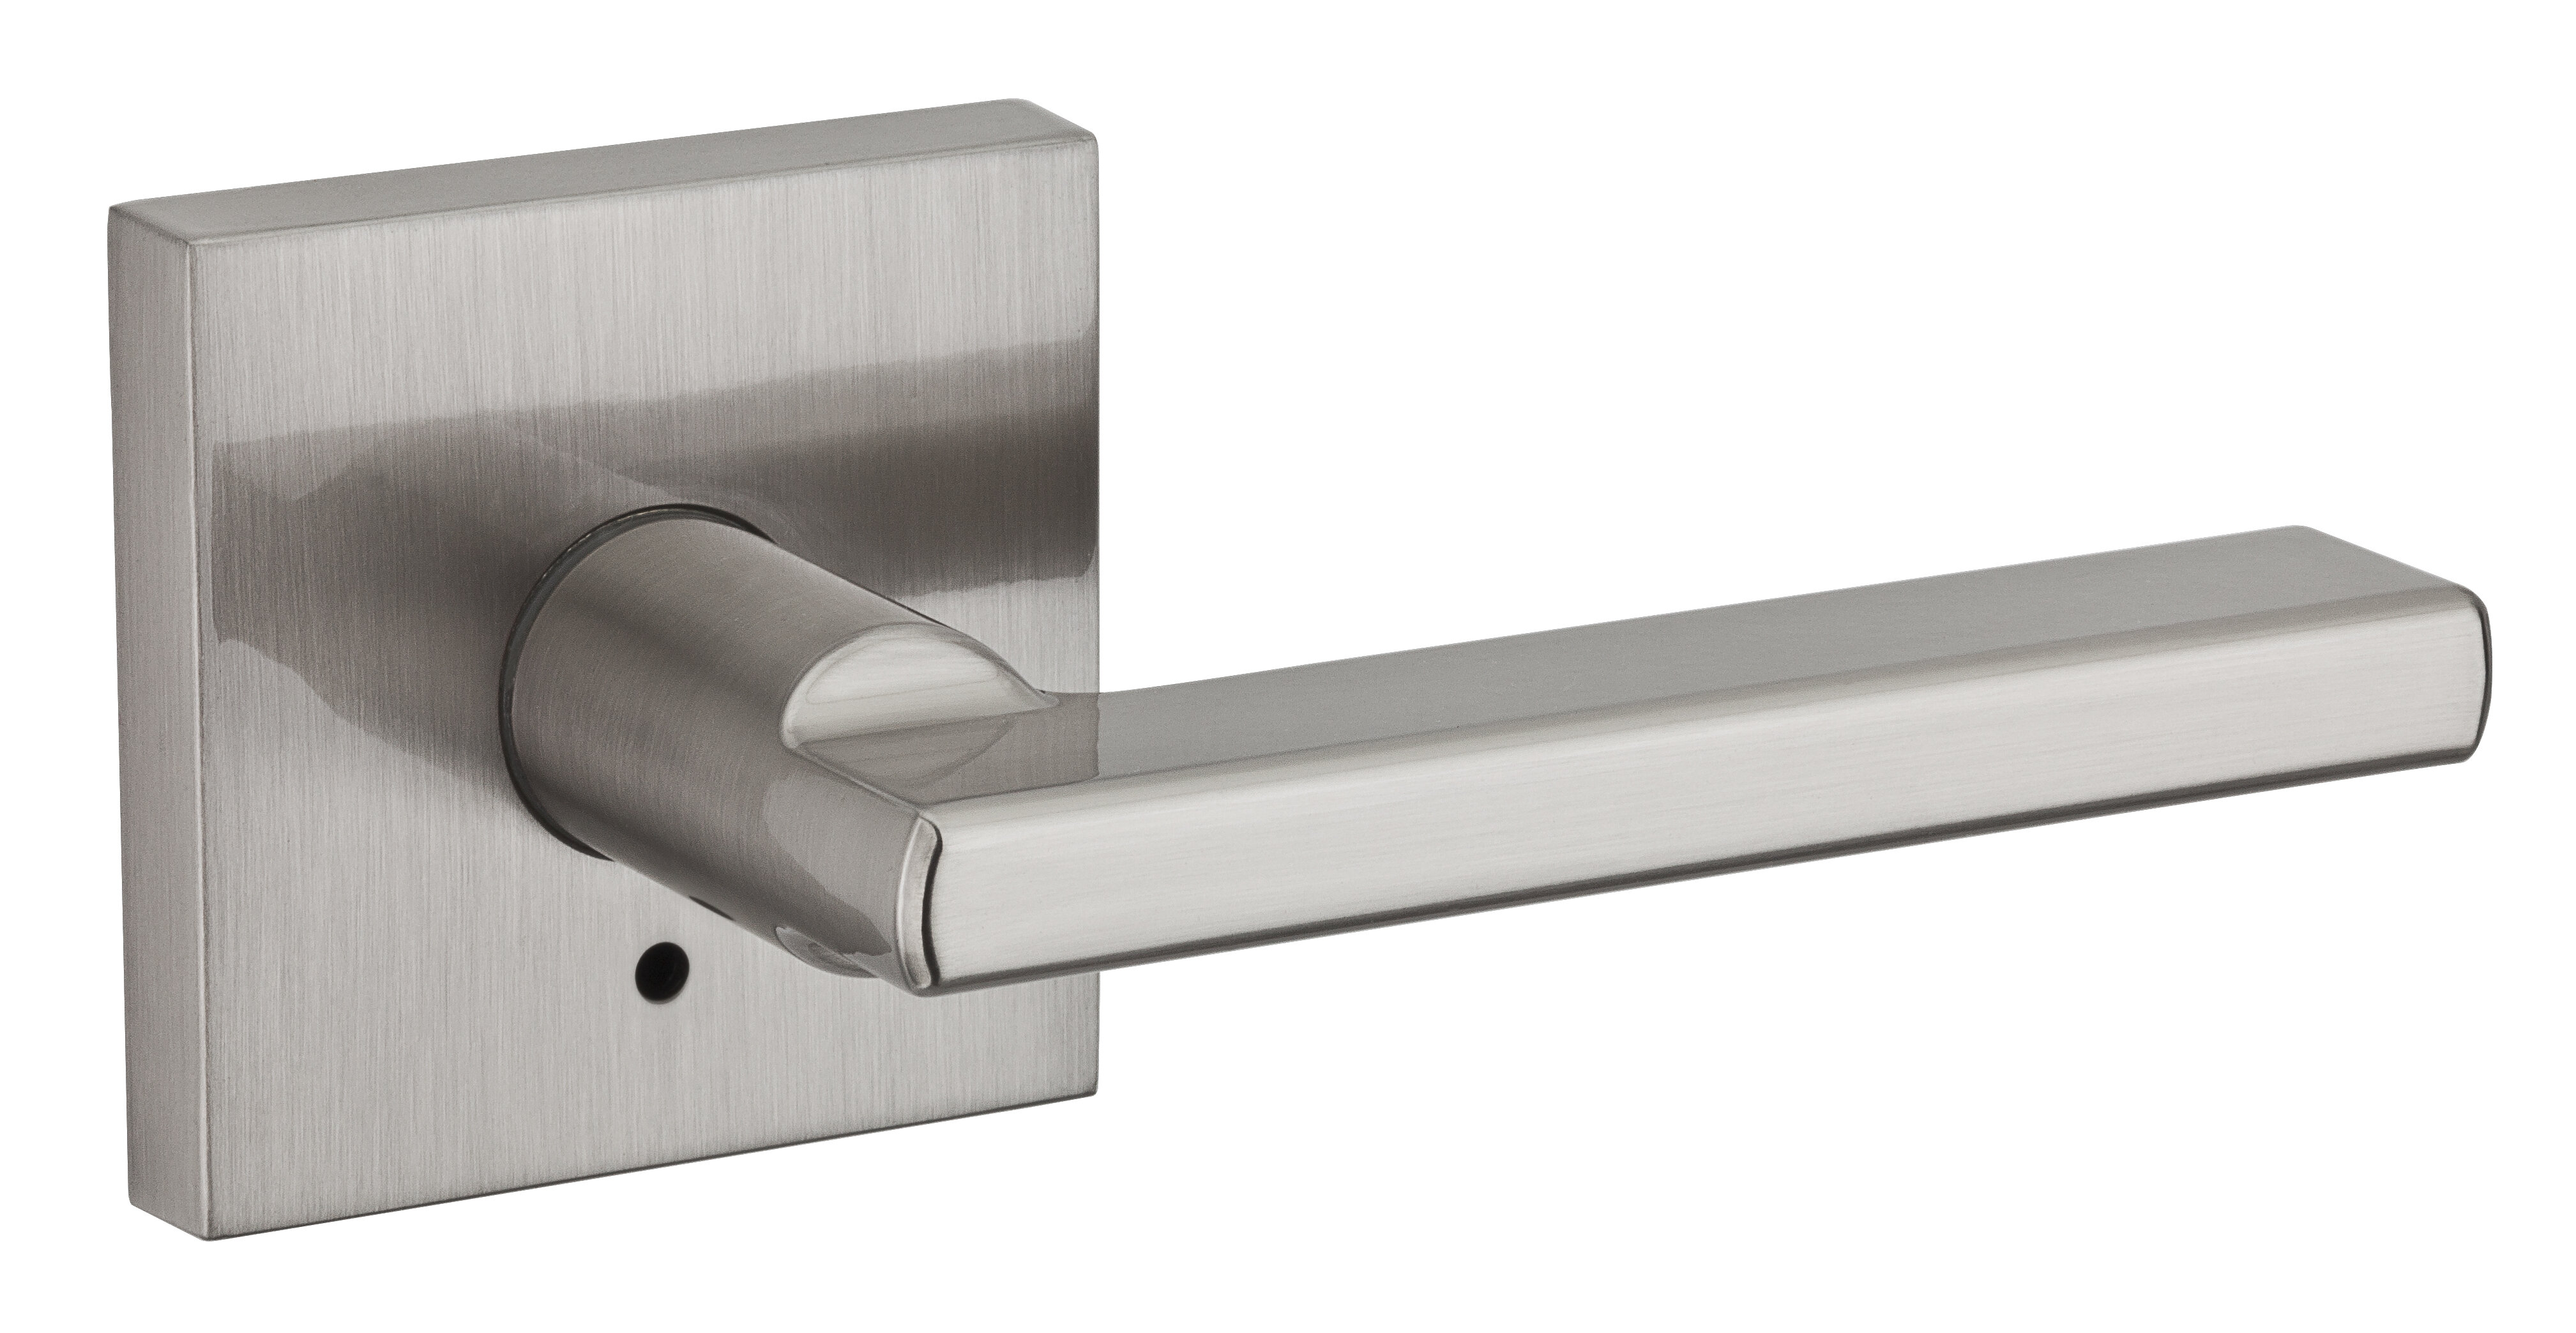 baldwin finishes handle com door hardware to myknobs of blog how courtesy knobs cabinet different chrome clean with